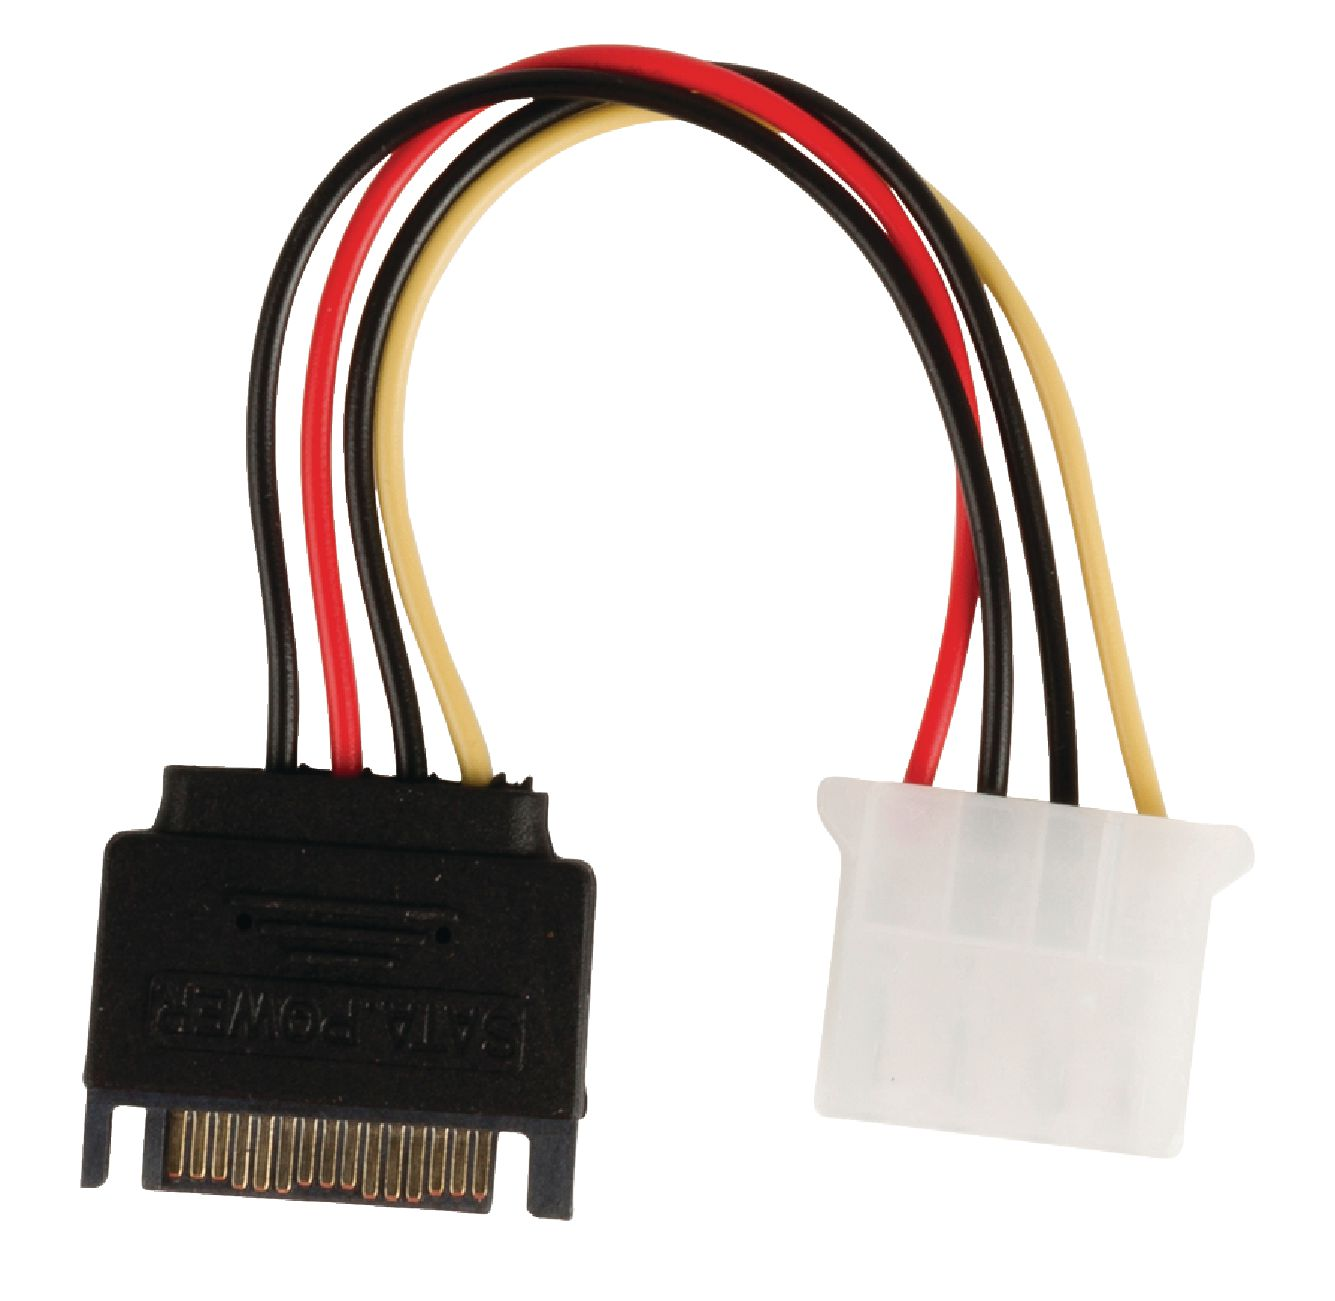 VALUELINE Kabel, VALUELINE interne stroomkabel SATA 15-pins male - Molex female 0.15 m